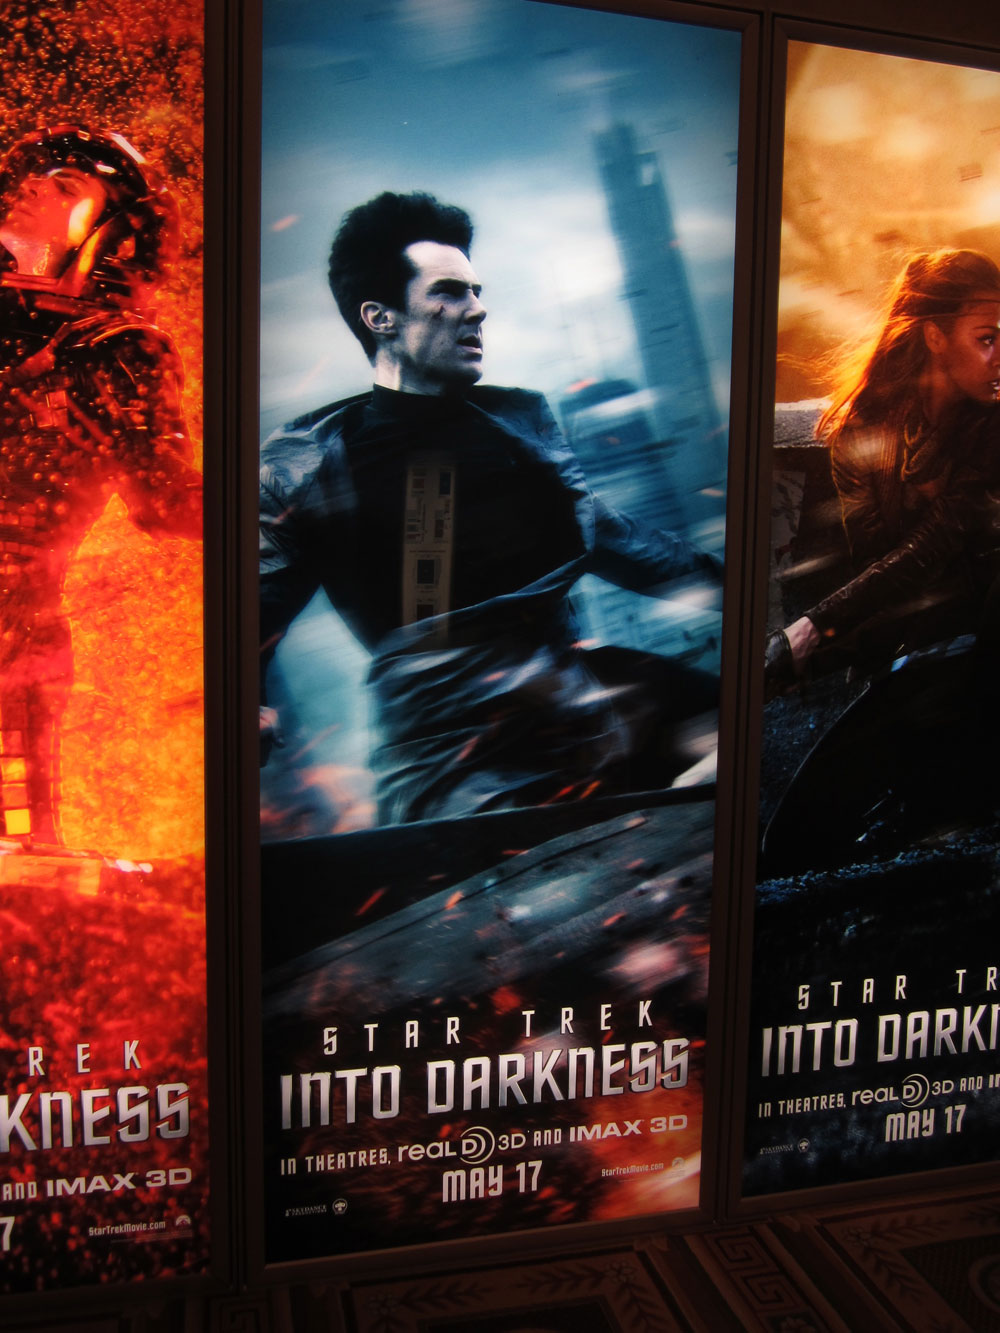 Star Trek Into Darkness Character Poster CinemaCon Shockya1 CinemaCon 2013: Chris Pine Star Trek Into Darkness Character Poster